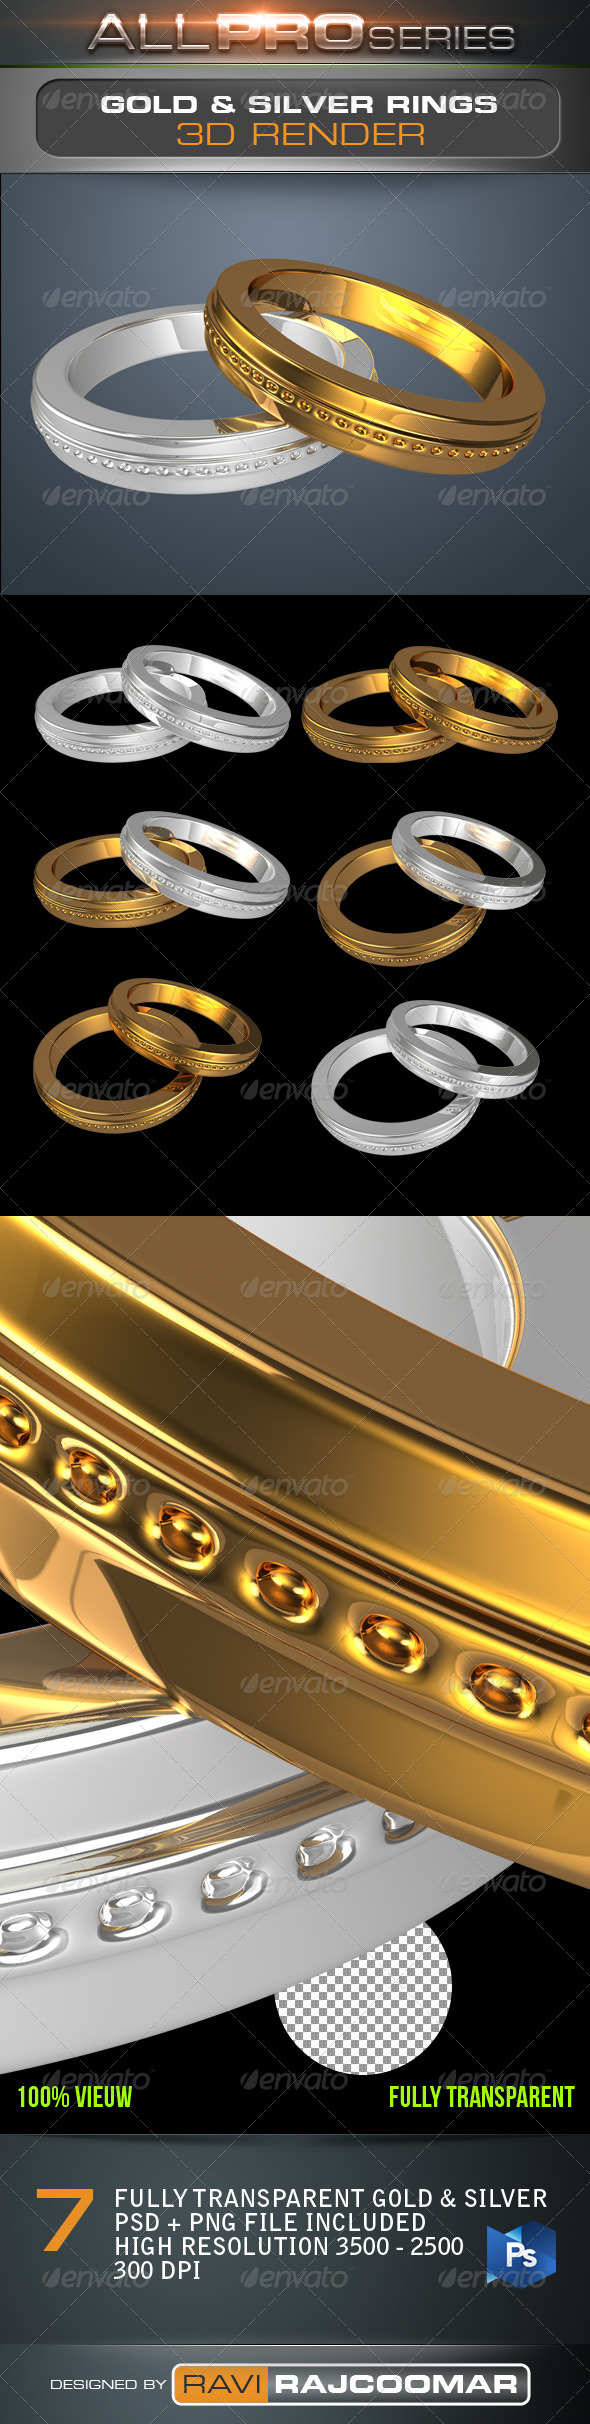 Gold & Silver Rings - Objects 3D Renders